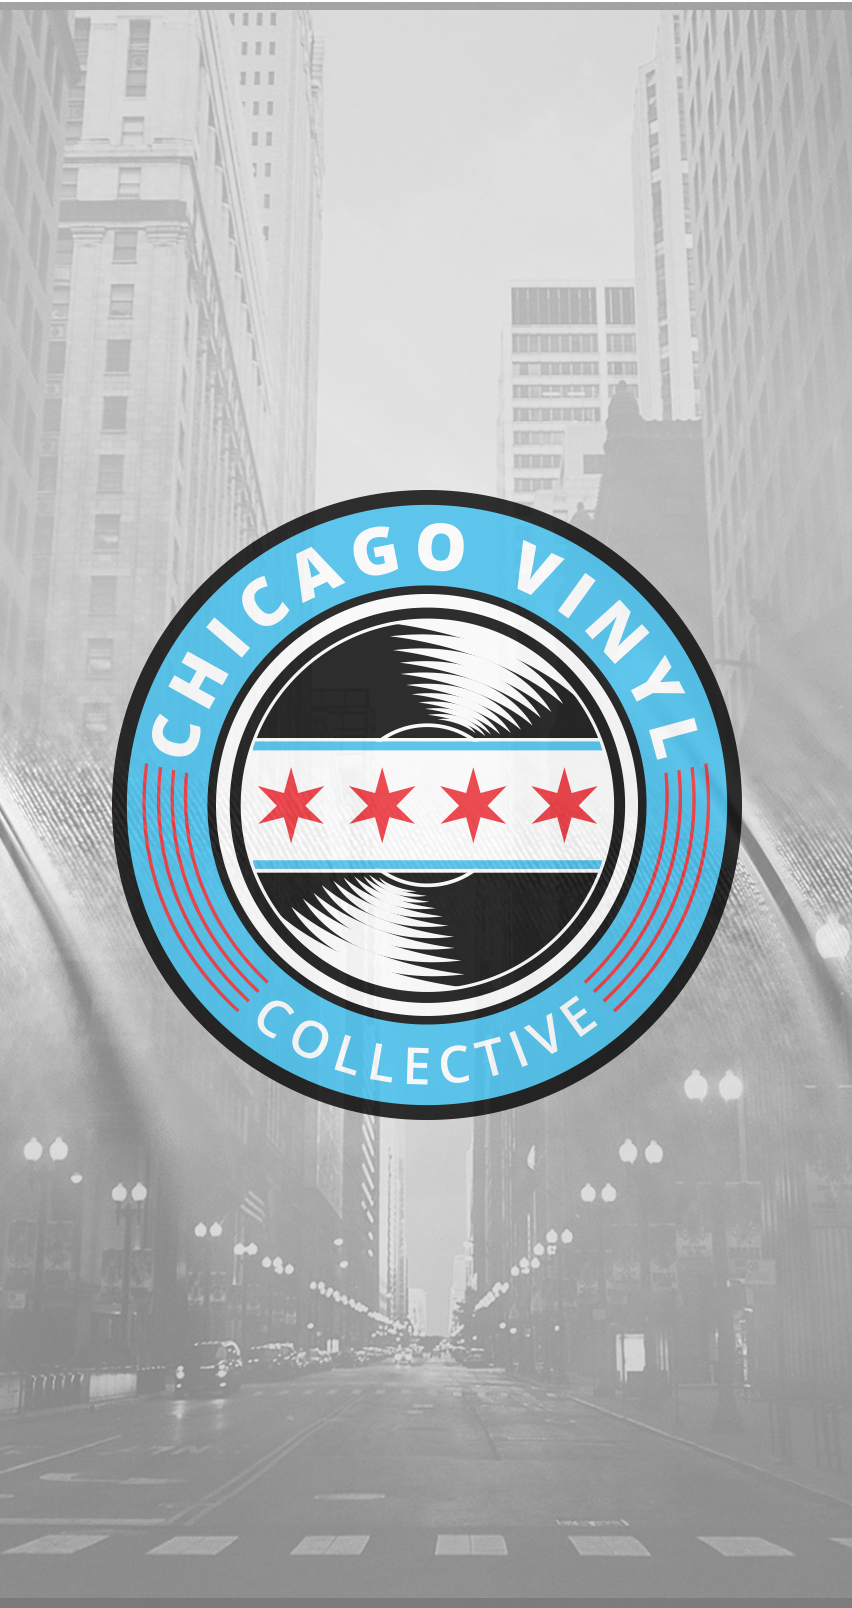 Chicago Vinyl Collective-0